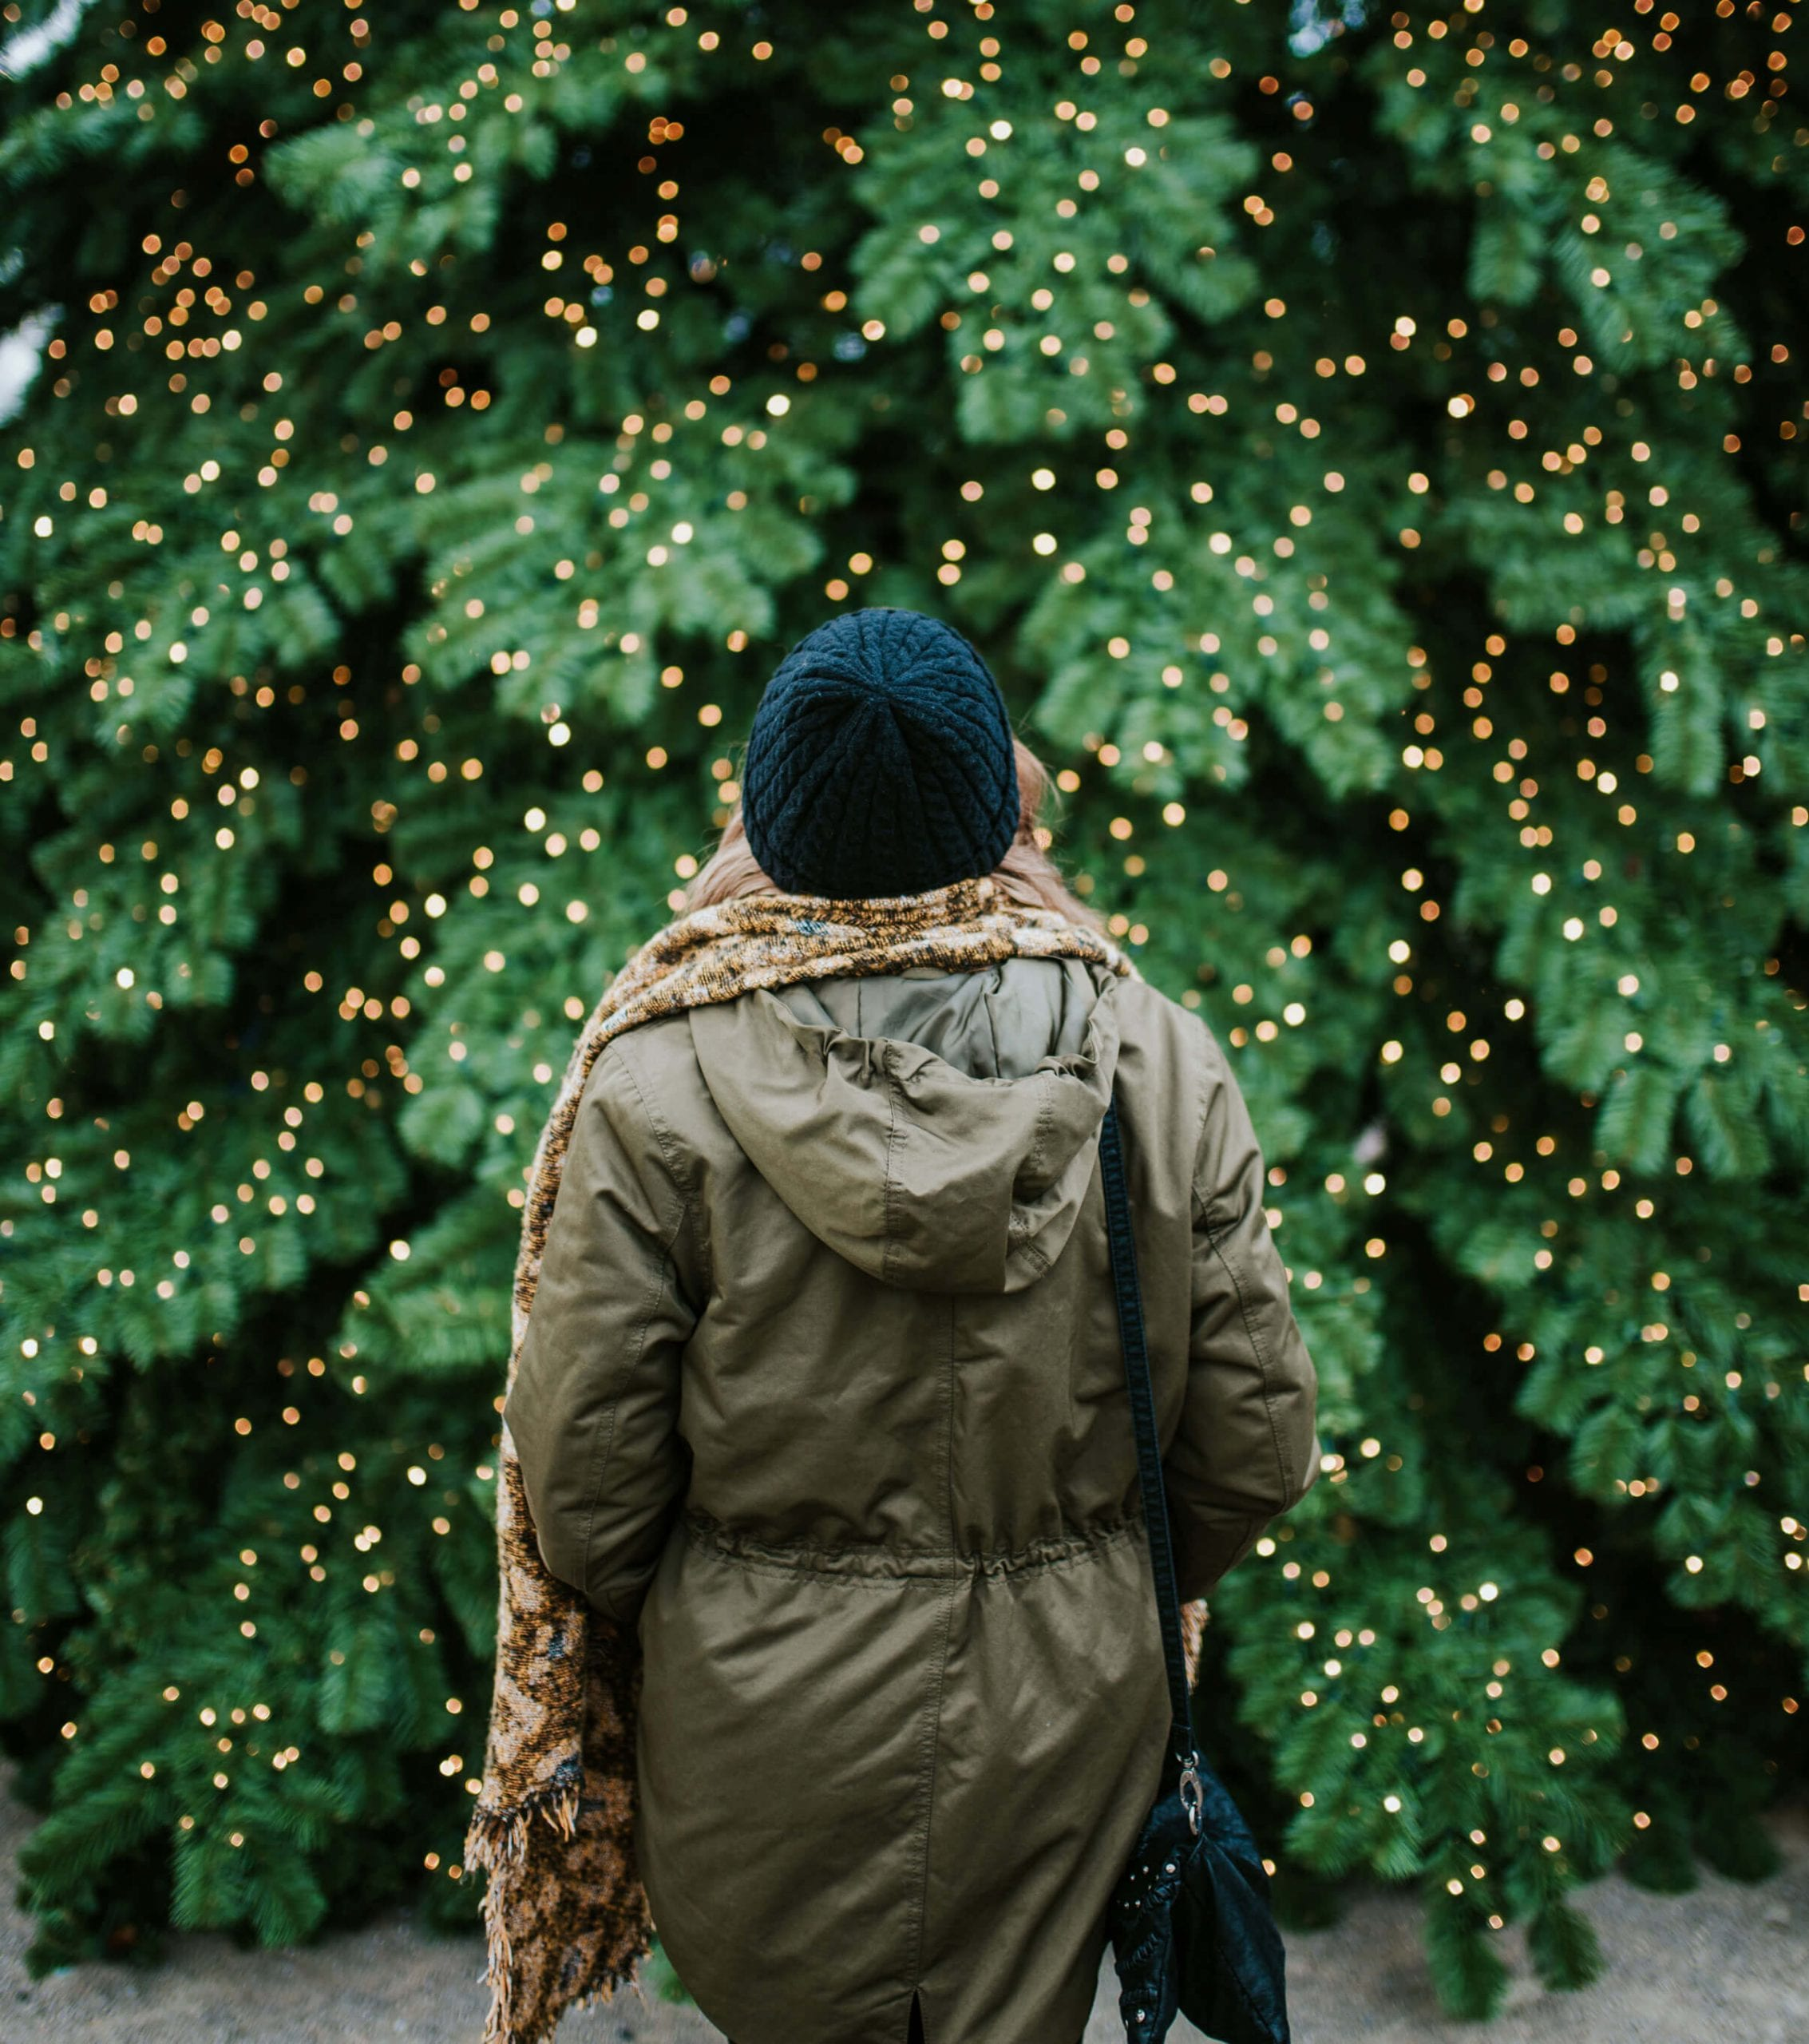 City vs Suburbs: Holiday Decorations in New York